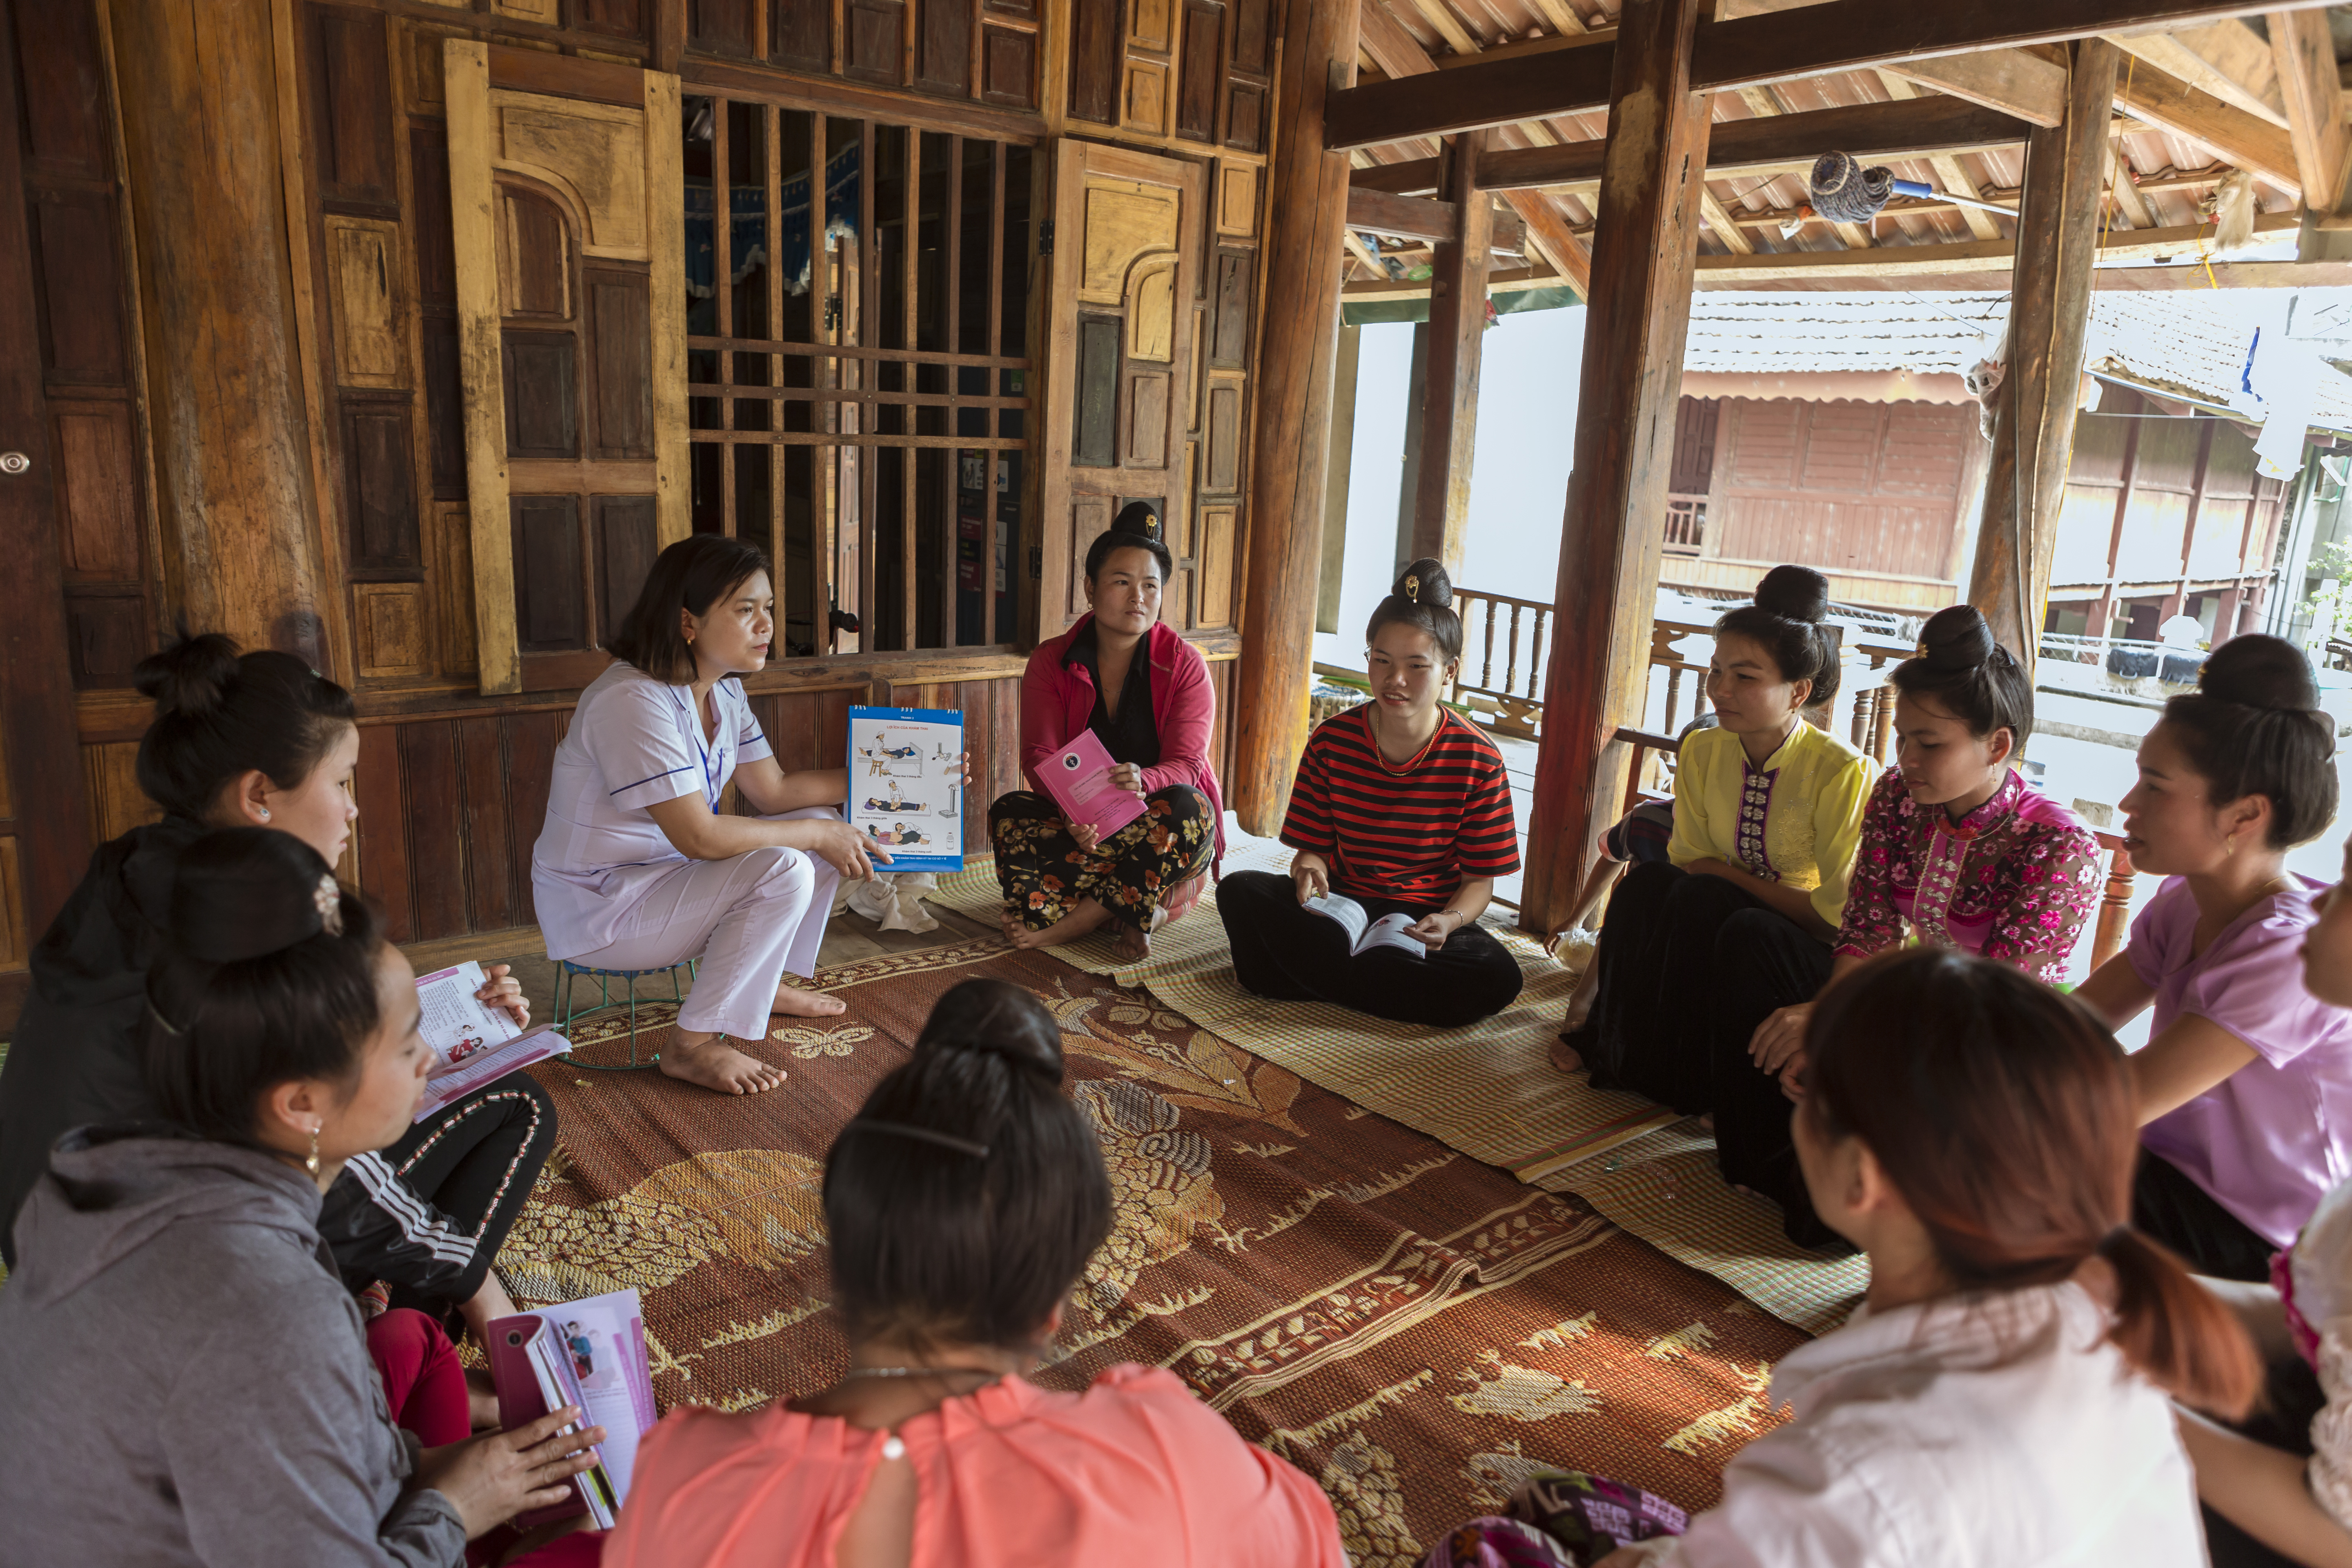 Chief nurse Lo Thi Tinh (left) has worked for over ten years at the Na Son commune health center in Vietnam, facilitating regular community group discussions on antenatal and prenatal care for the Community Integrated Early Childhood Development Club.